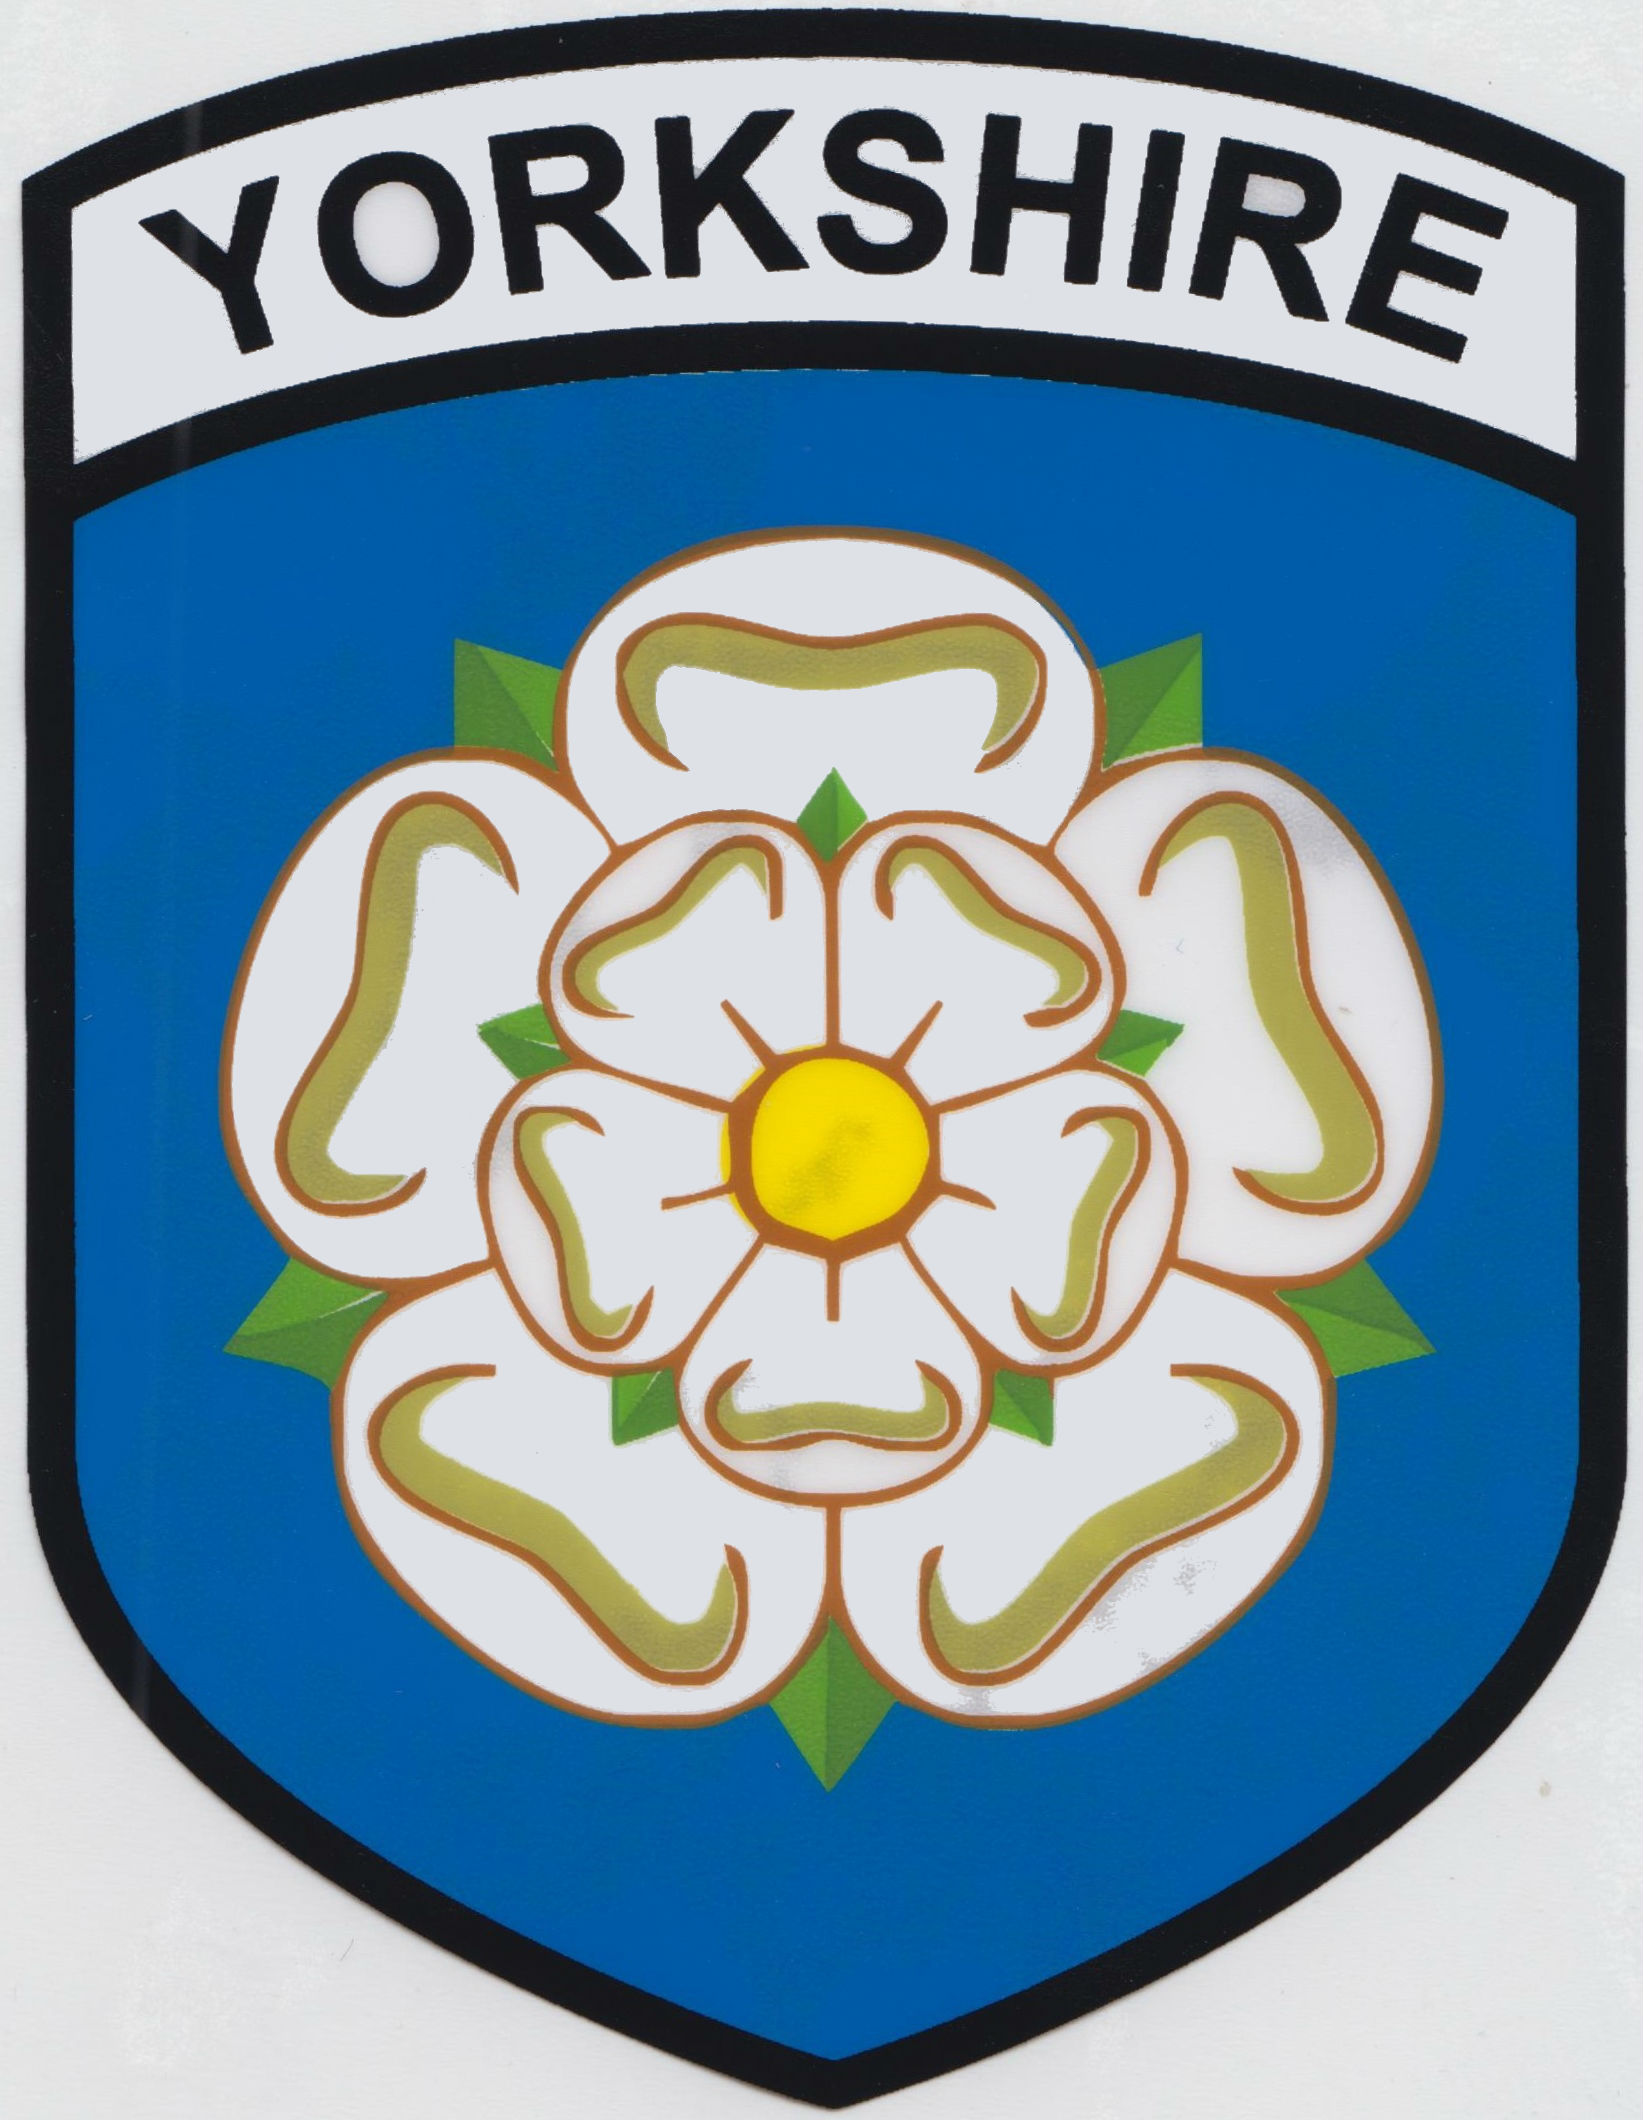 Wall Stickers How To Apply Yorkshire Rose County Flag Car Sticker Shield Self Cling